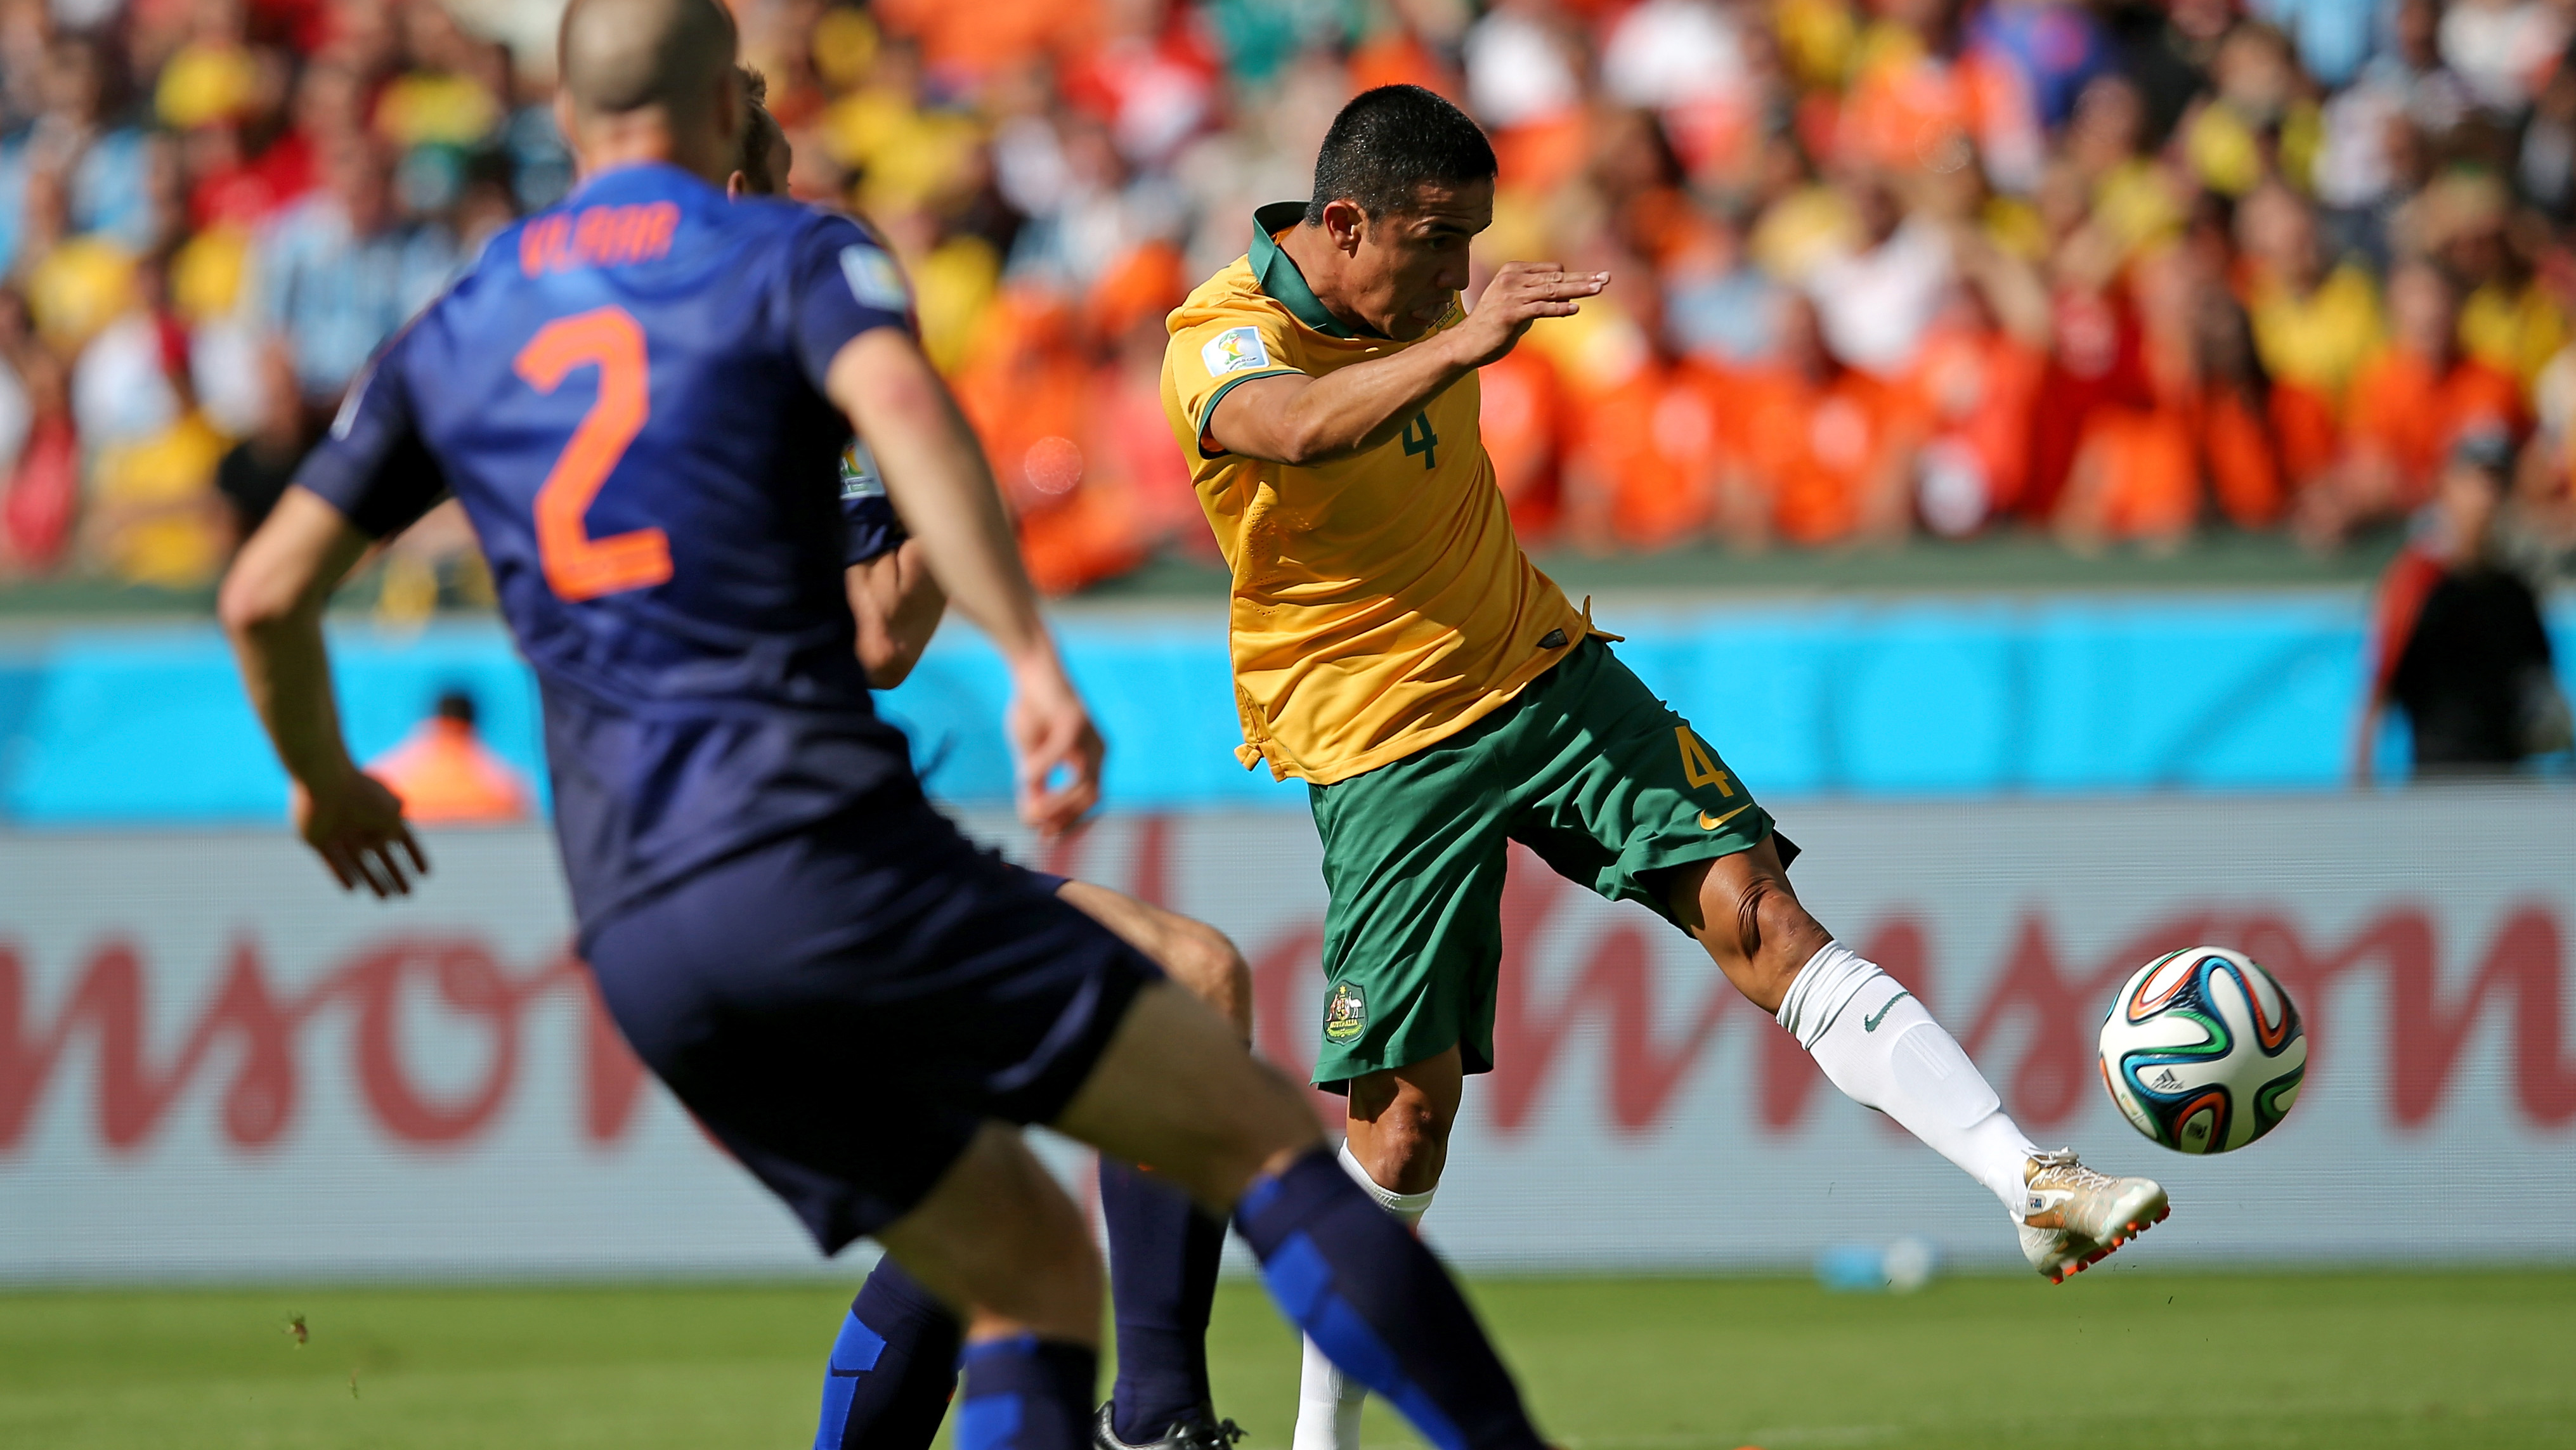 Tim Cahill's incredible Volley against the Netherlands at the FIFA World Cup.